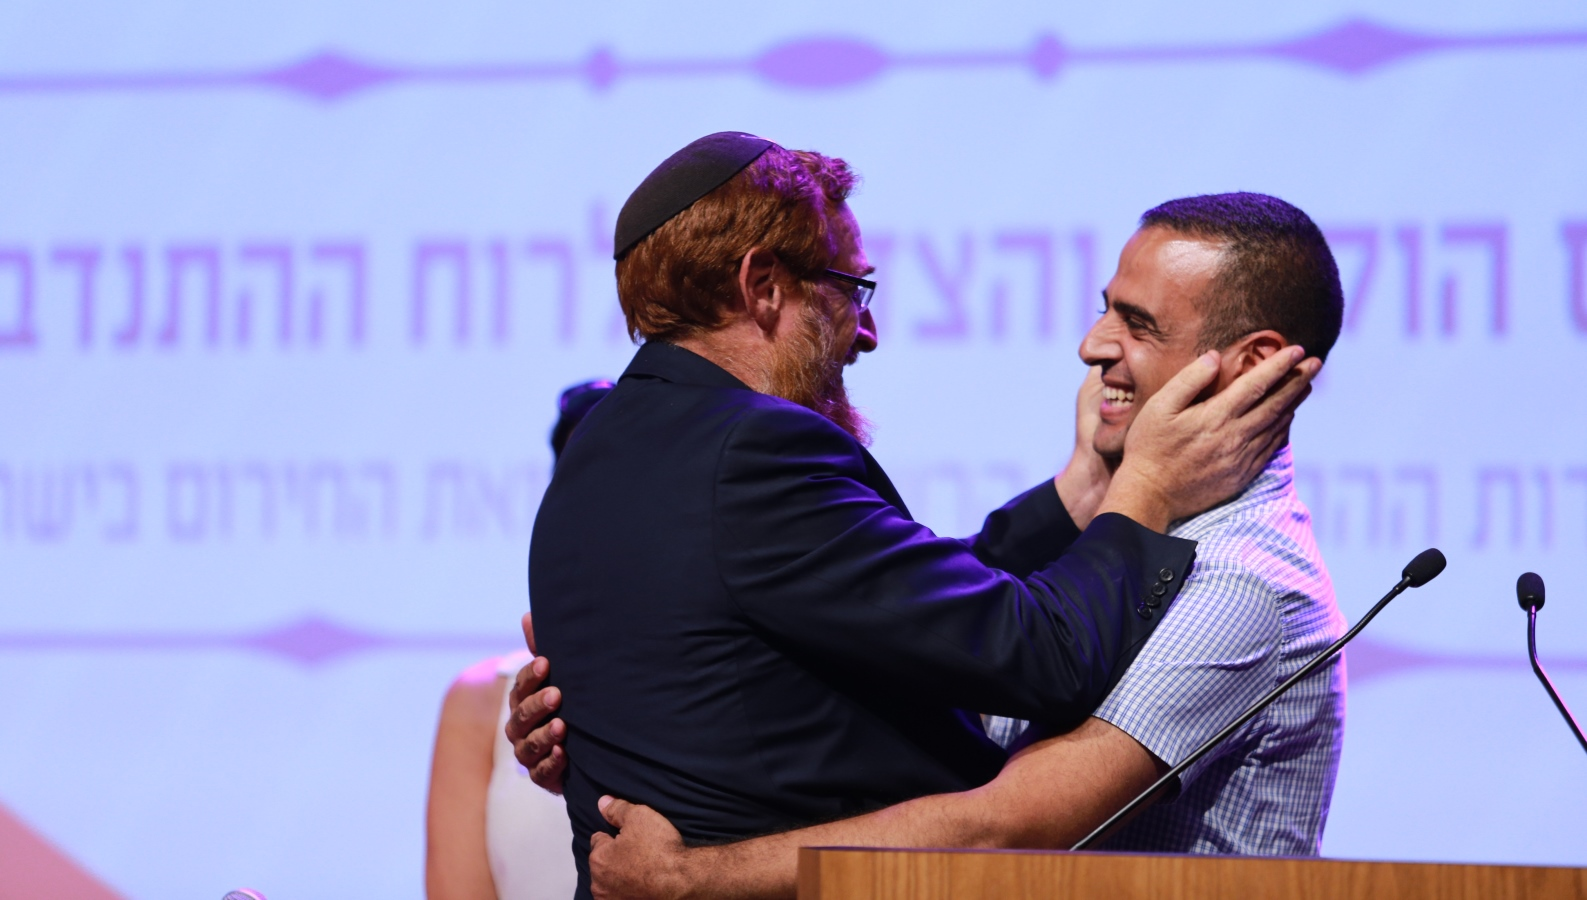 Member of Knesset Yehudah Glick hugging Kabahah Muawhiya, an Arab-Israeli first-responder. Photo by Aharon Crown/United Hatzalah